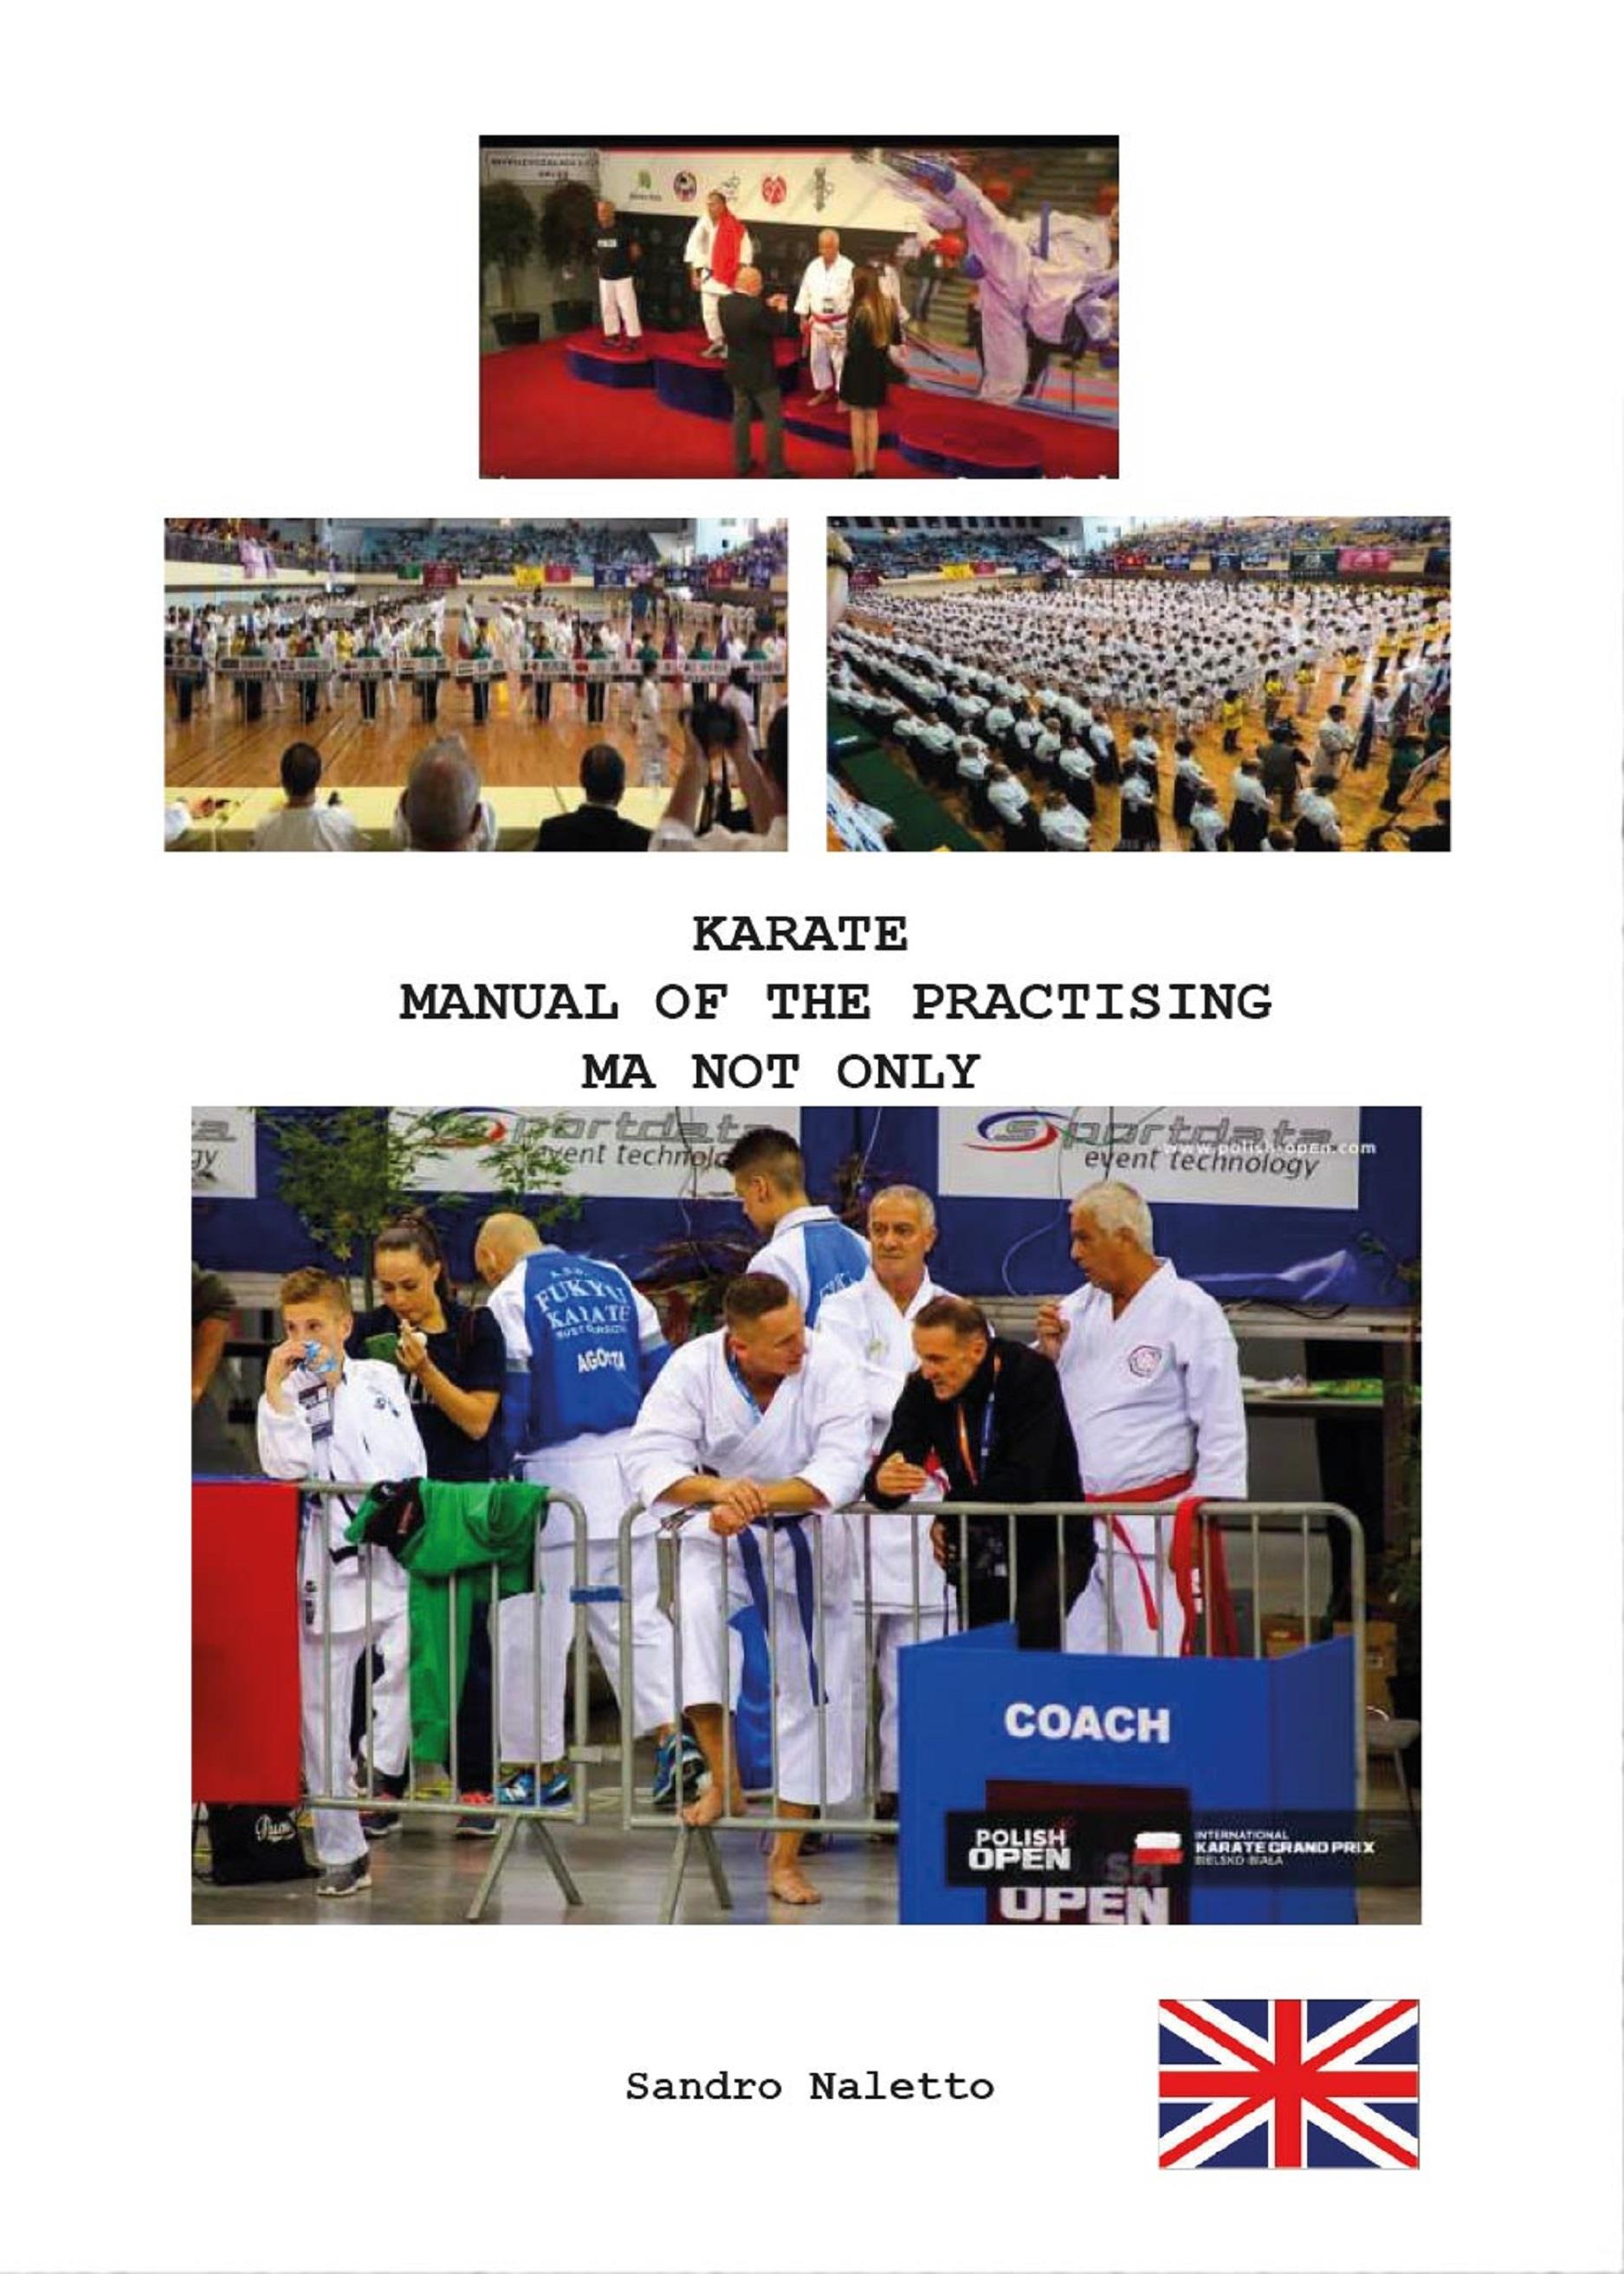 Karate manual of the practising ma not only